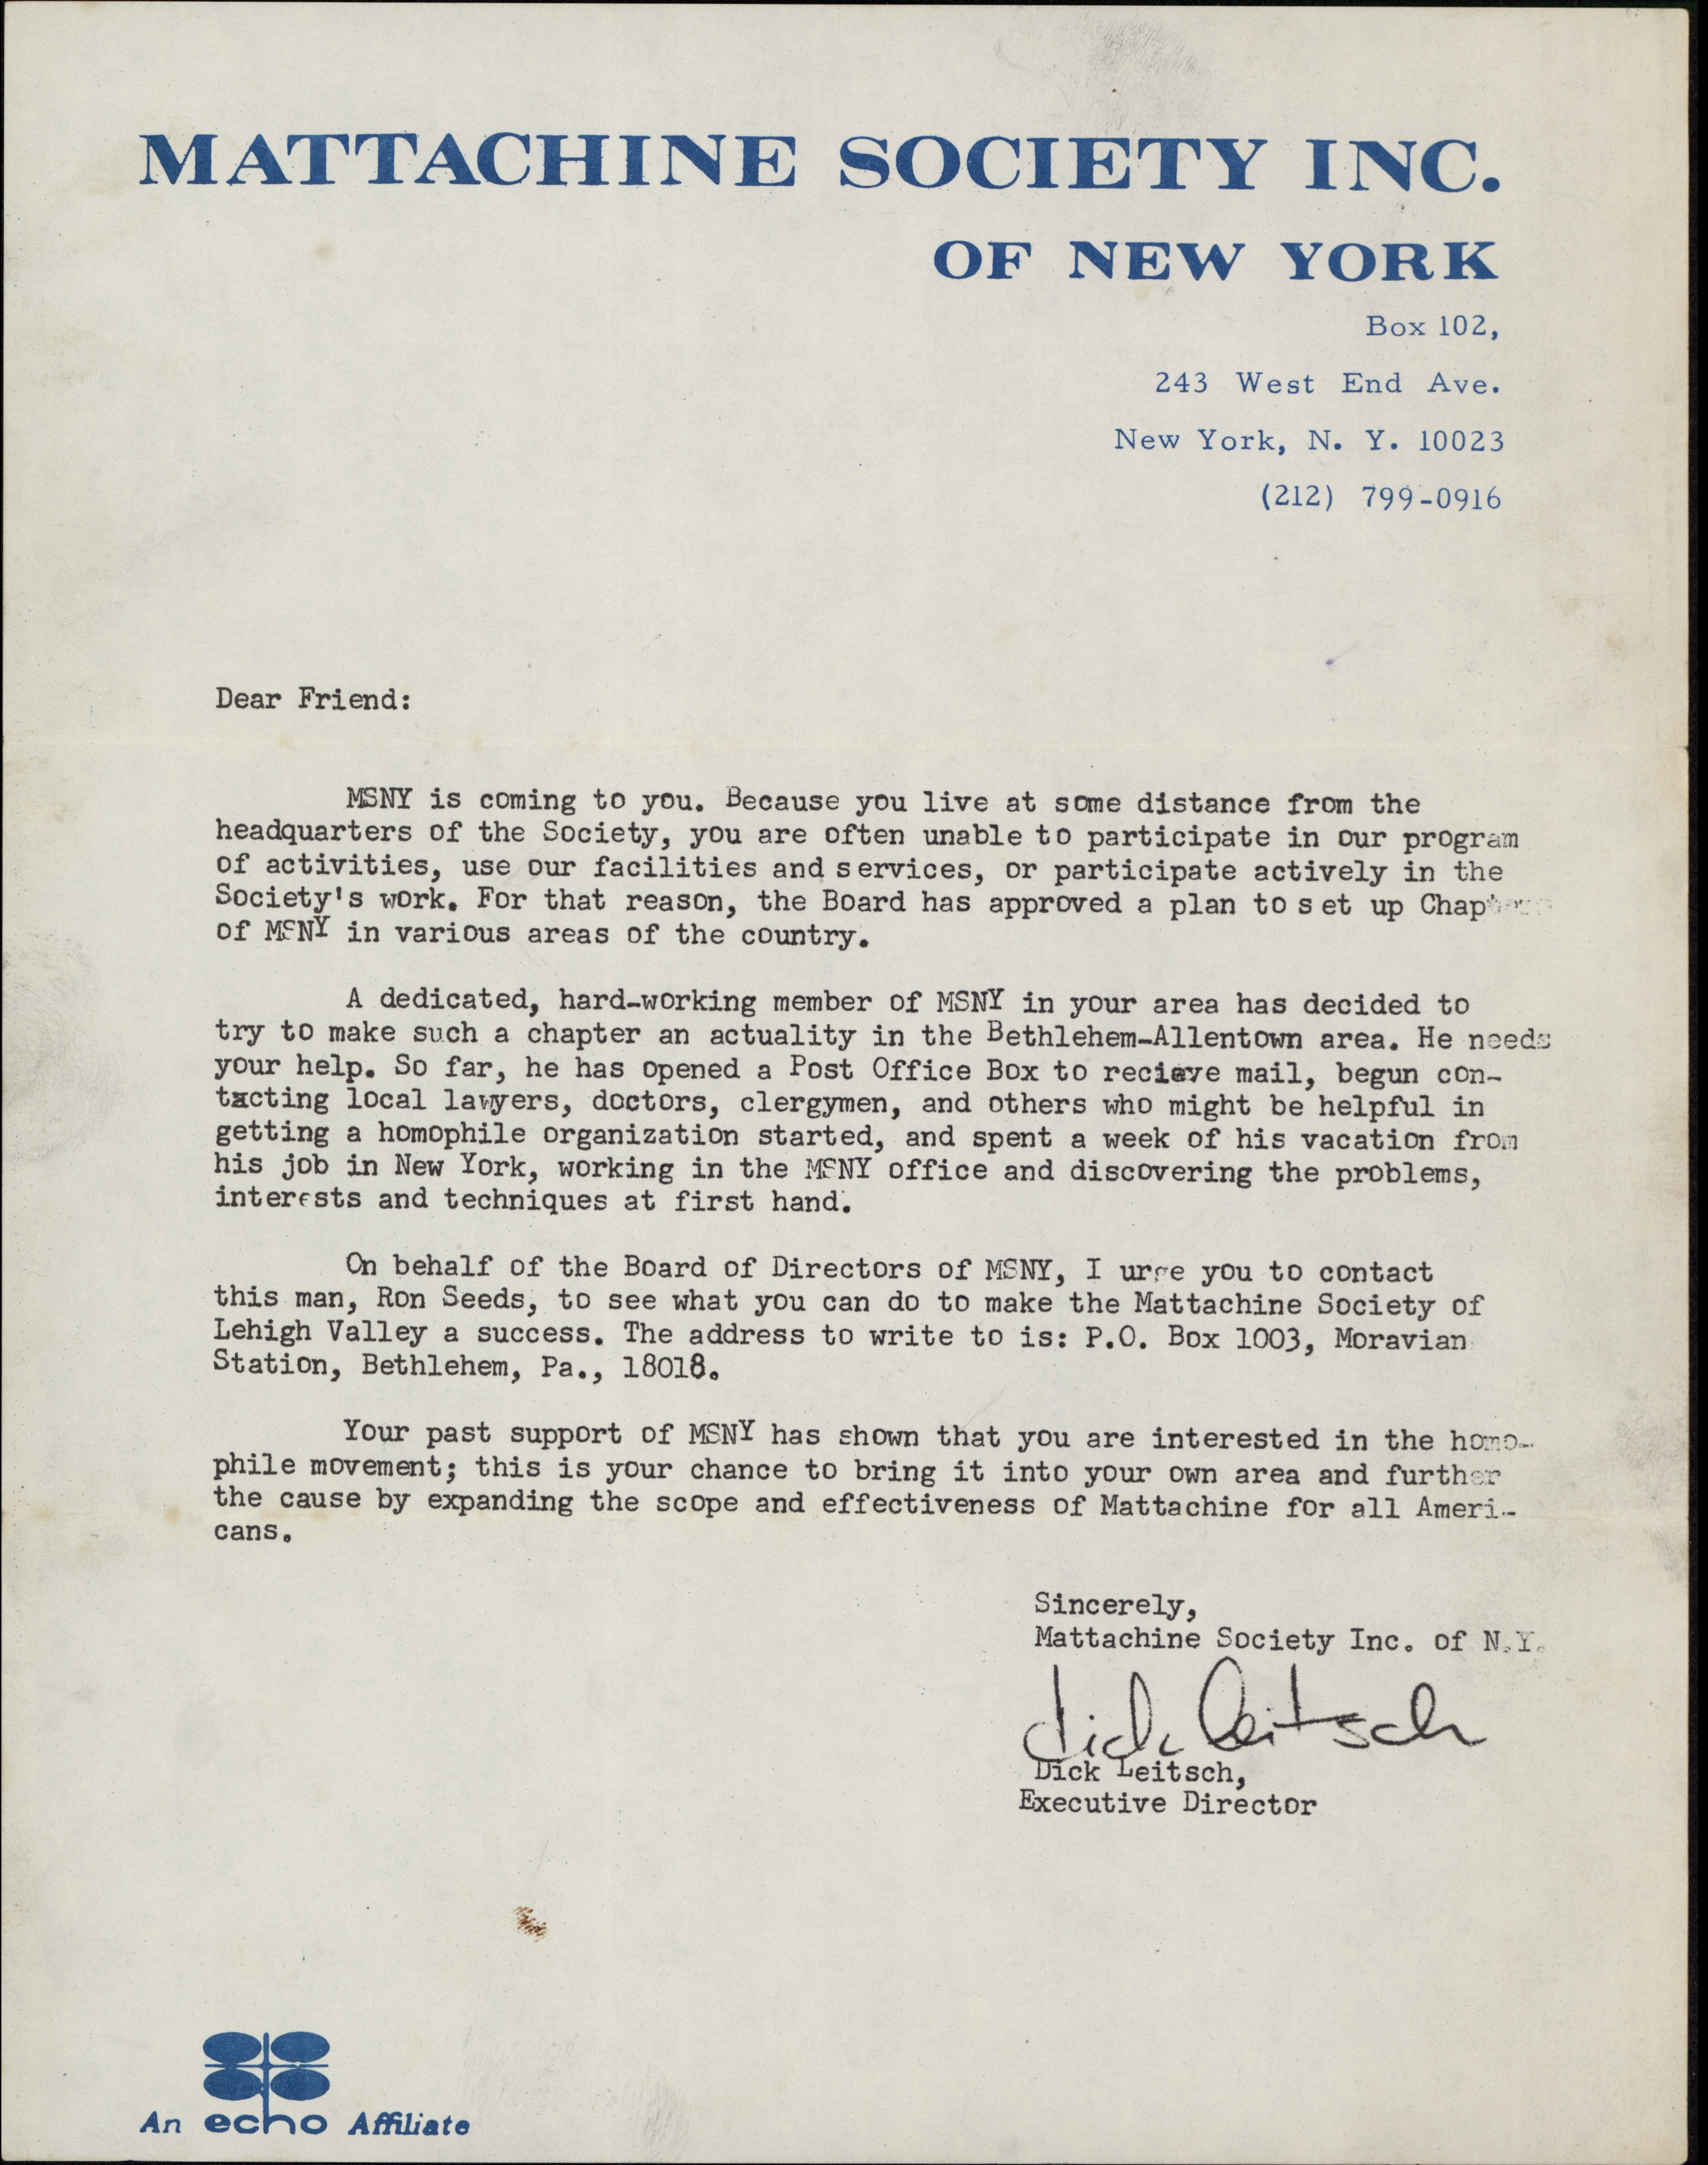 Letter sent to Joe Burns in 1969 from the Mattachine Society of New York in an attempt to establish a gay activist organization in the Lehigh Valley area.